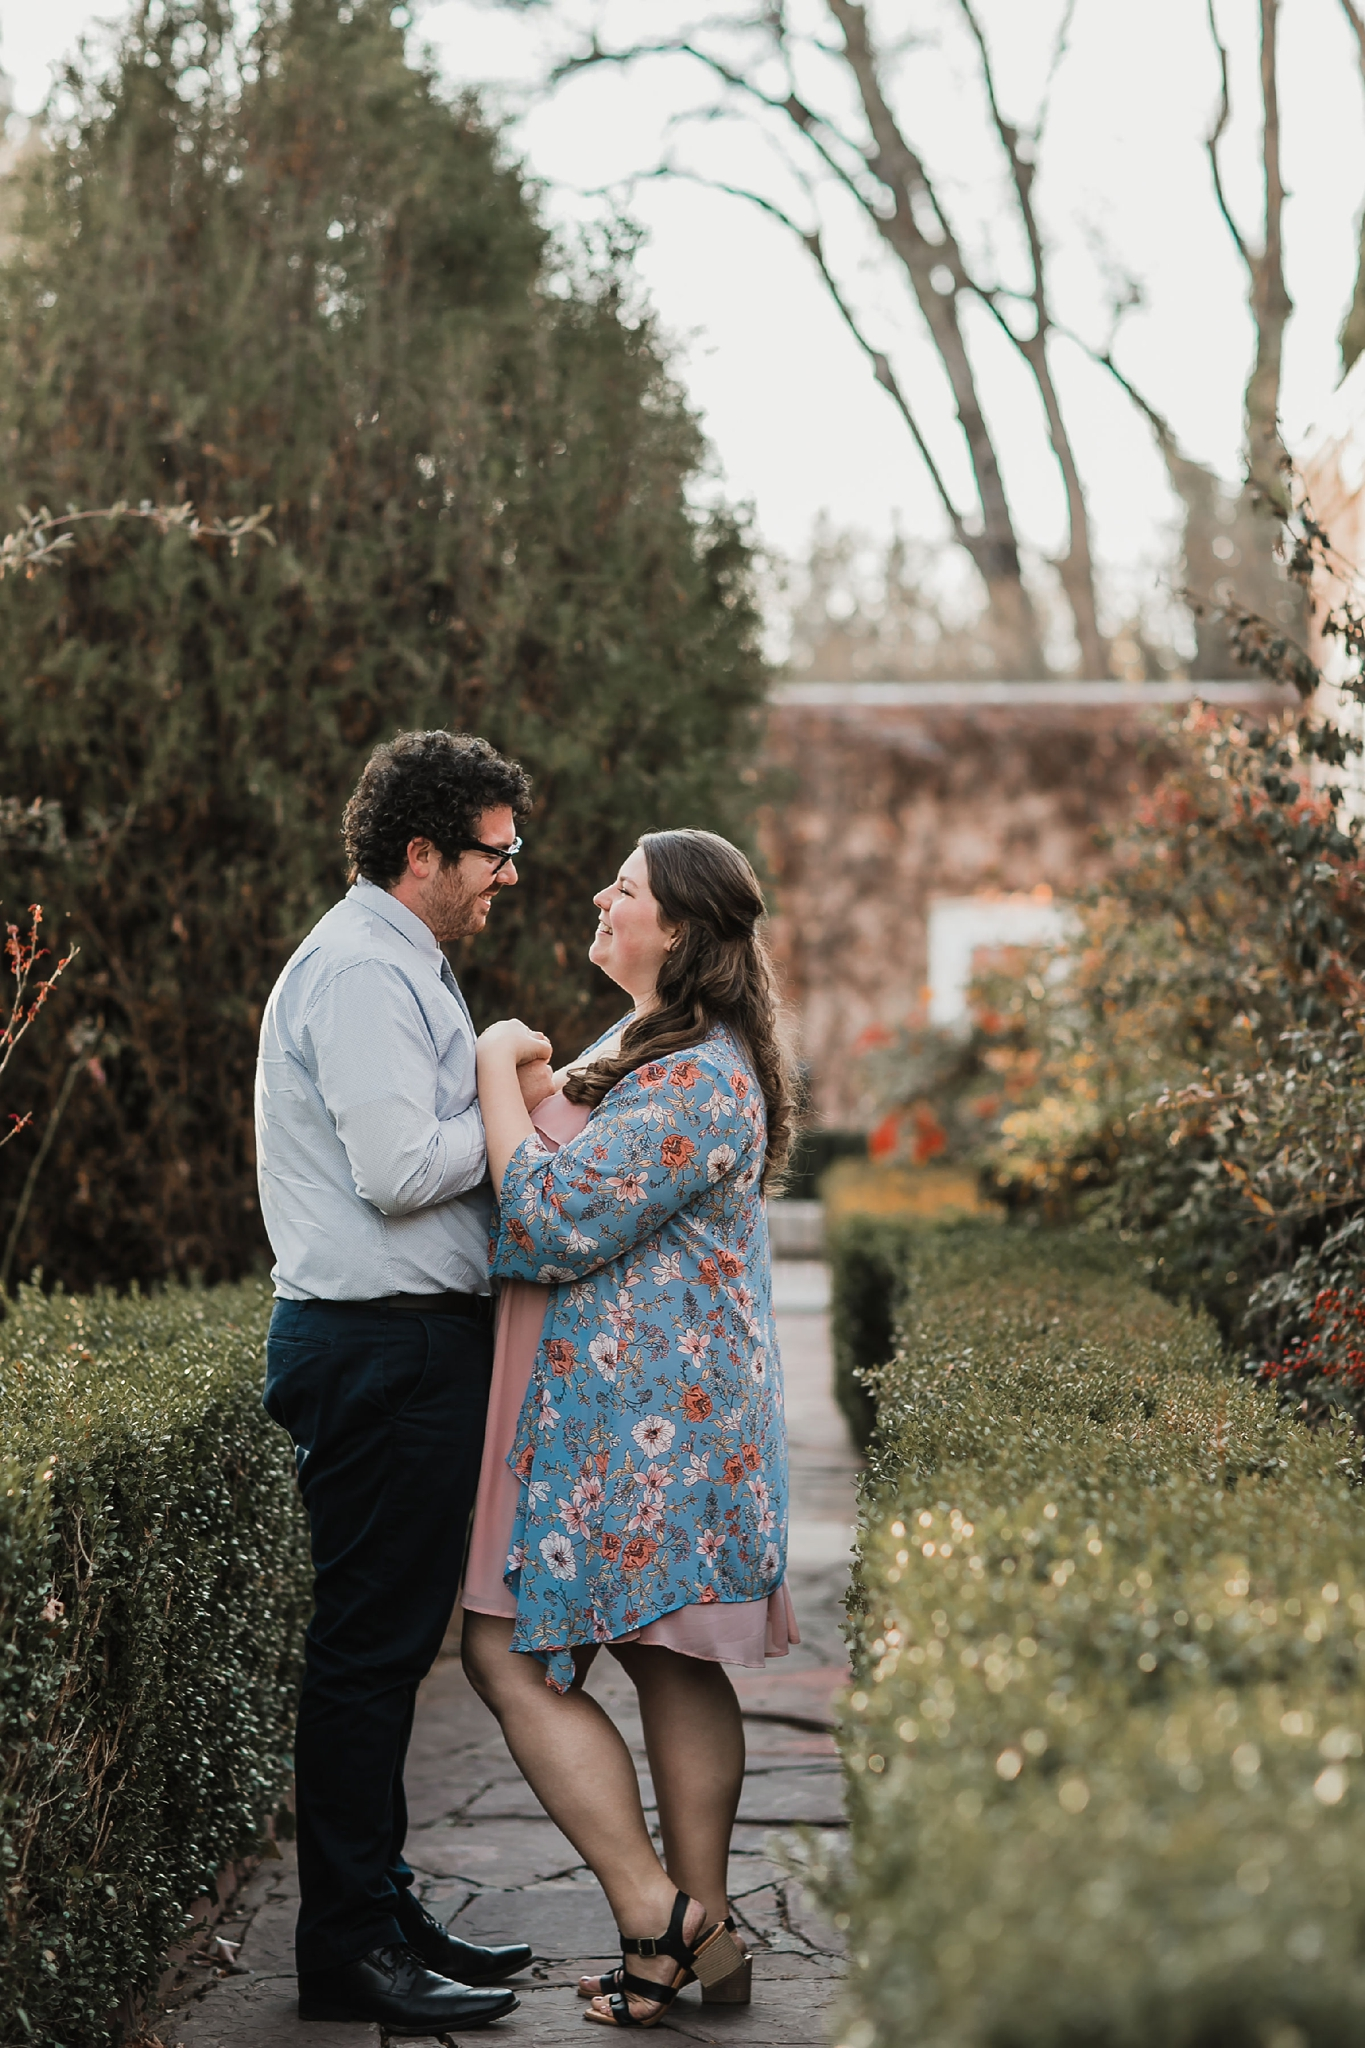 Alicia+lucia+photography+-+albuquerque+wedding+photographer+-+santa+fe+wedding+photography+-+new+mexico+wedding+photographer+-+new+mexico+wedding+-+los+poblanos+engagement+-+los+poblanos+wedding+-+farm+wedding+-+lavender+farm+wedding_0030.jpg